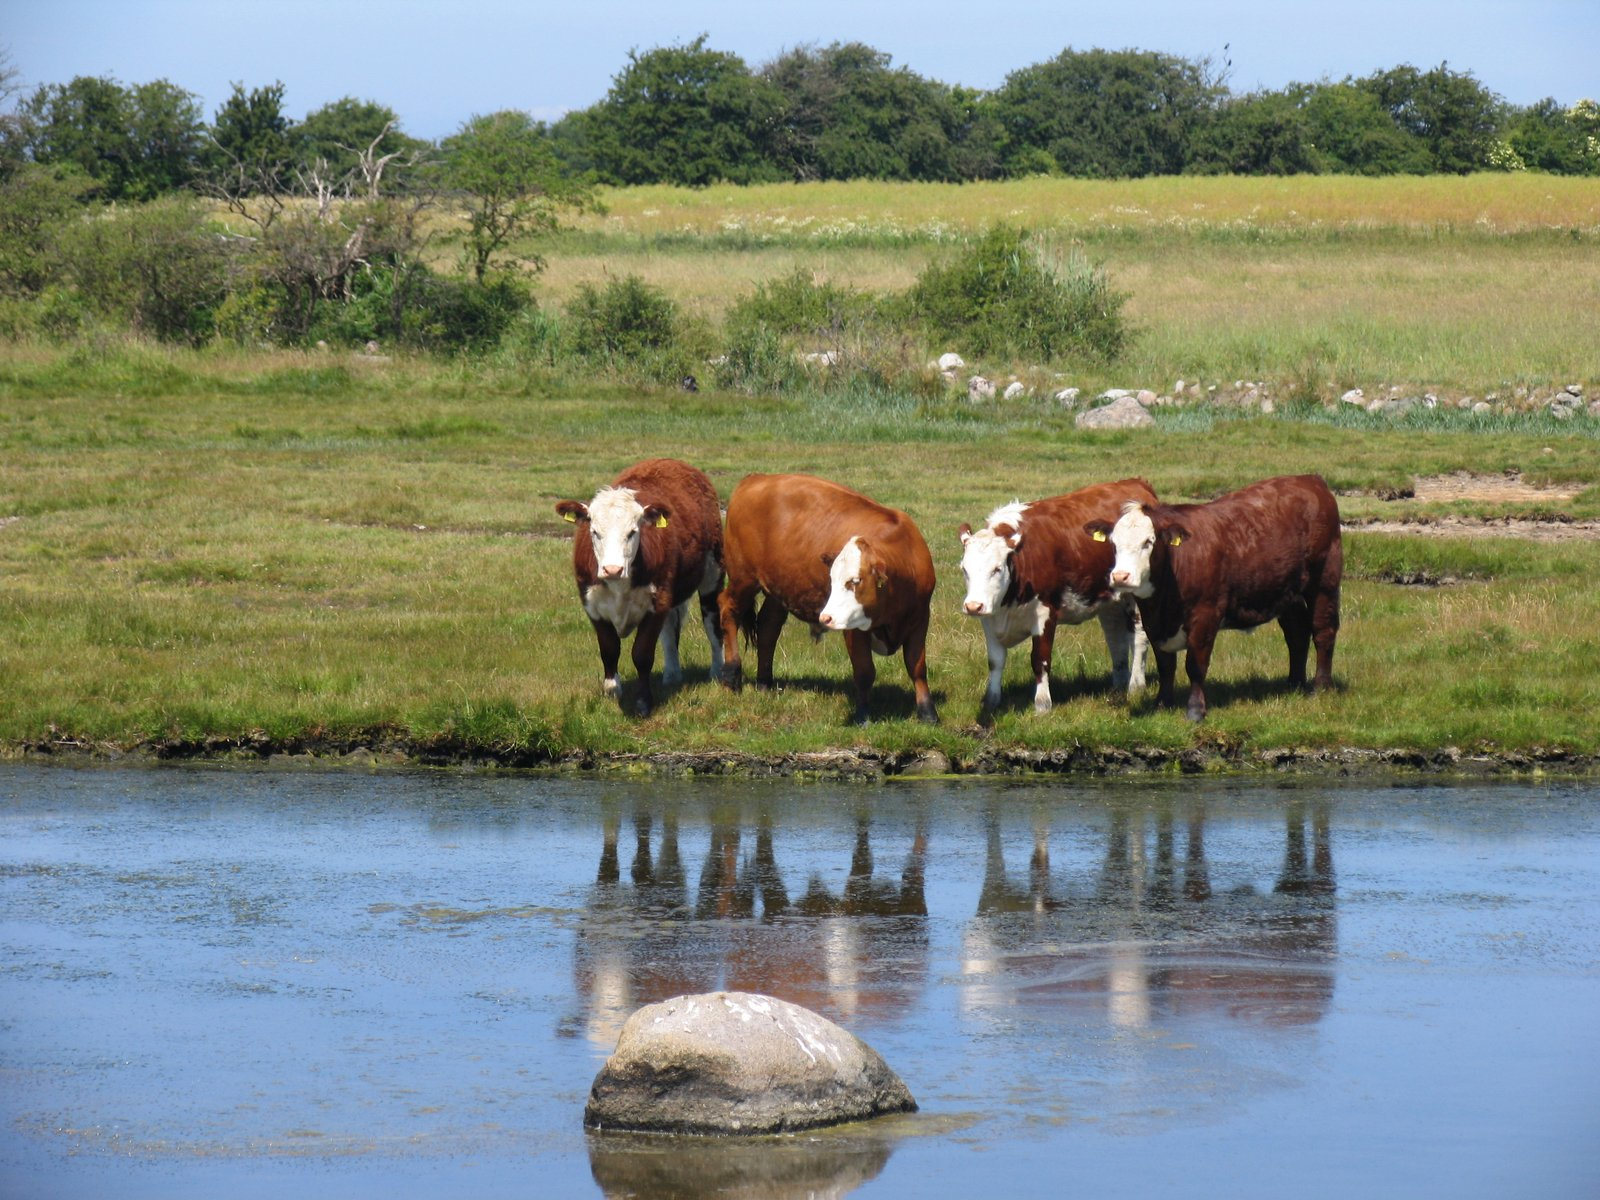 cows beside a body of water-1